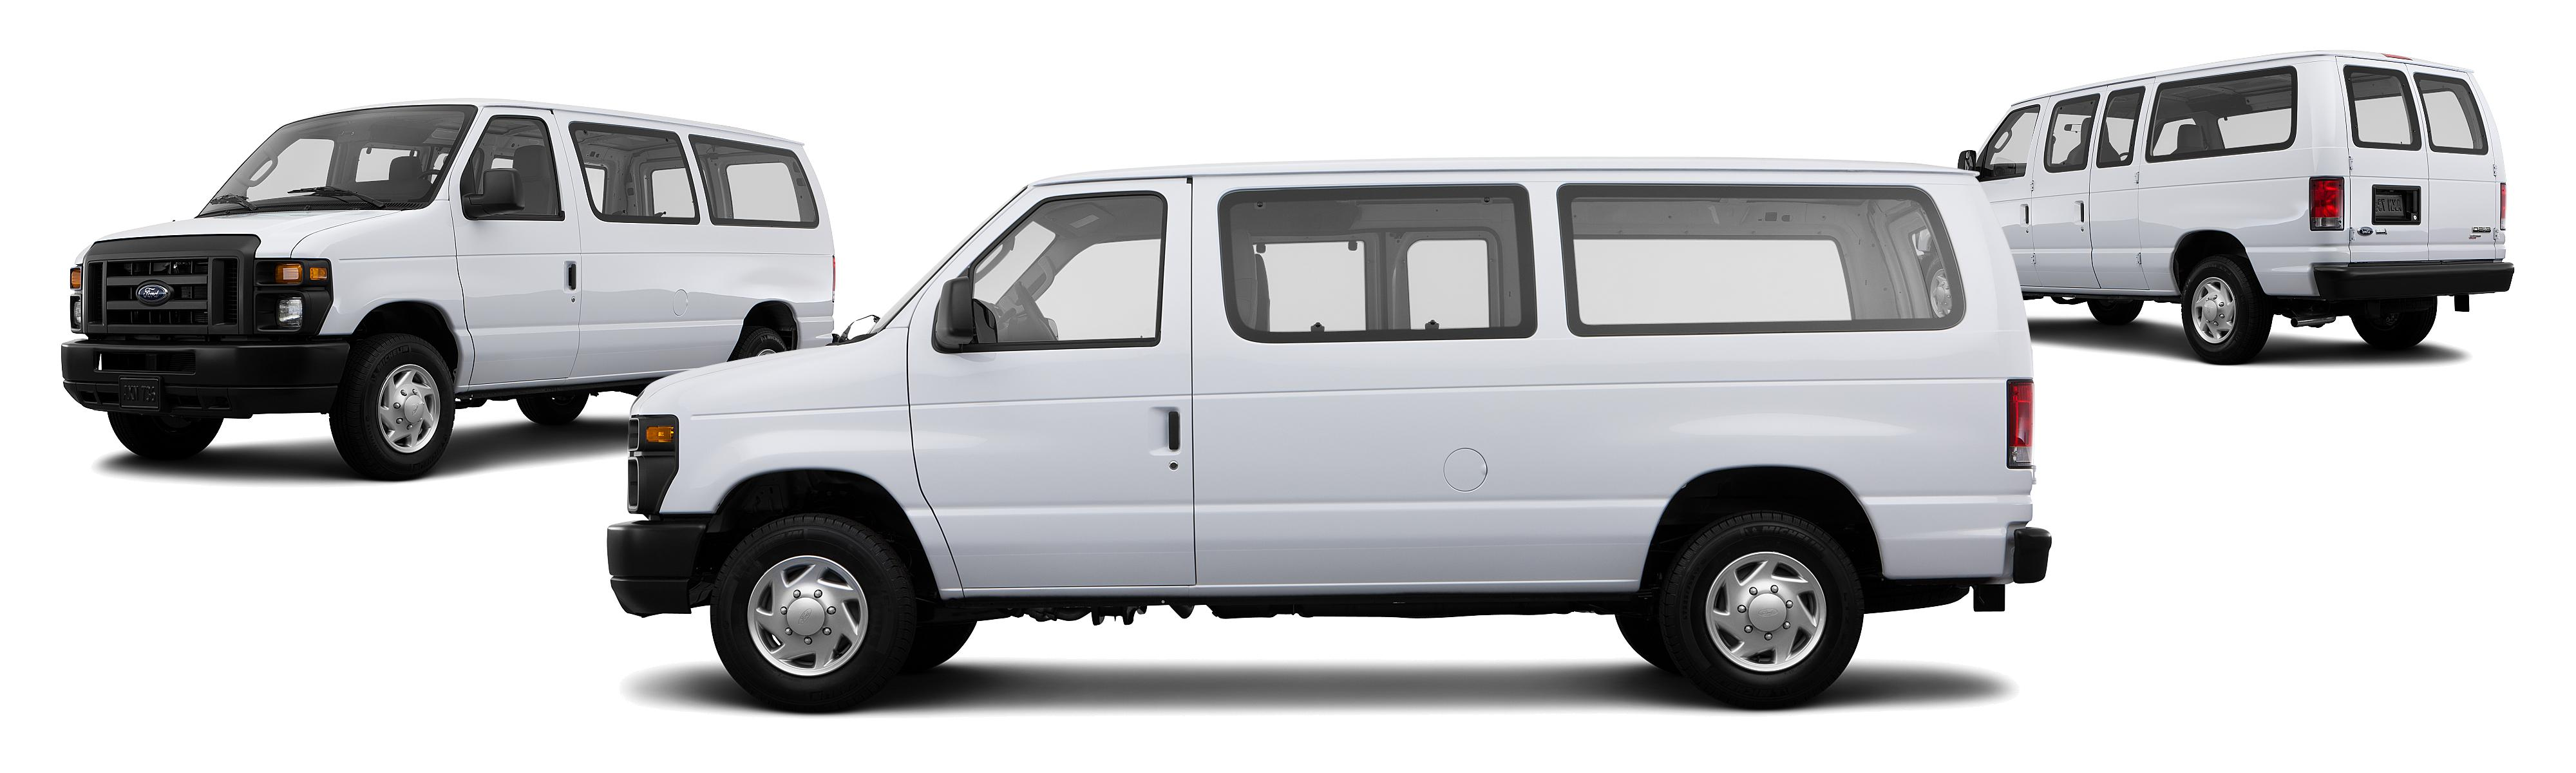 2014 ford e series cargo e 150 3dr extended cargo van research groovecar